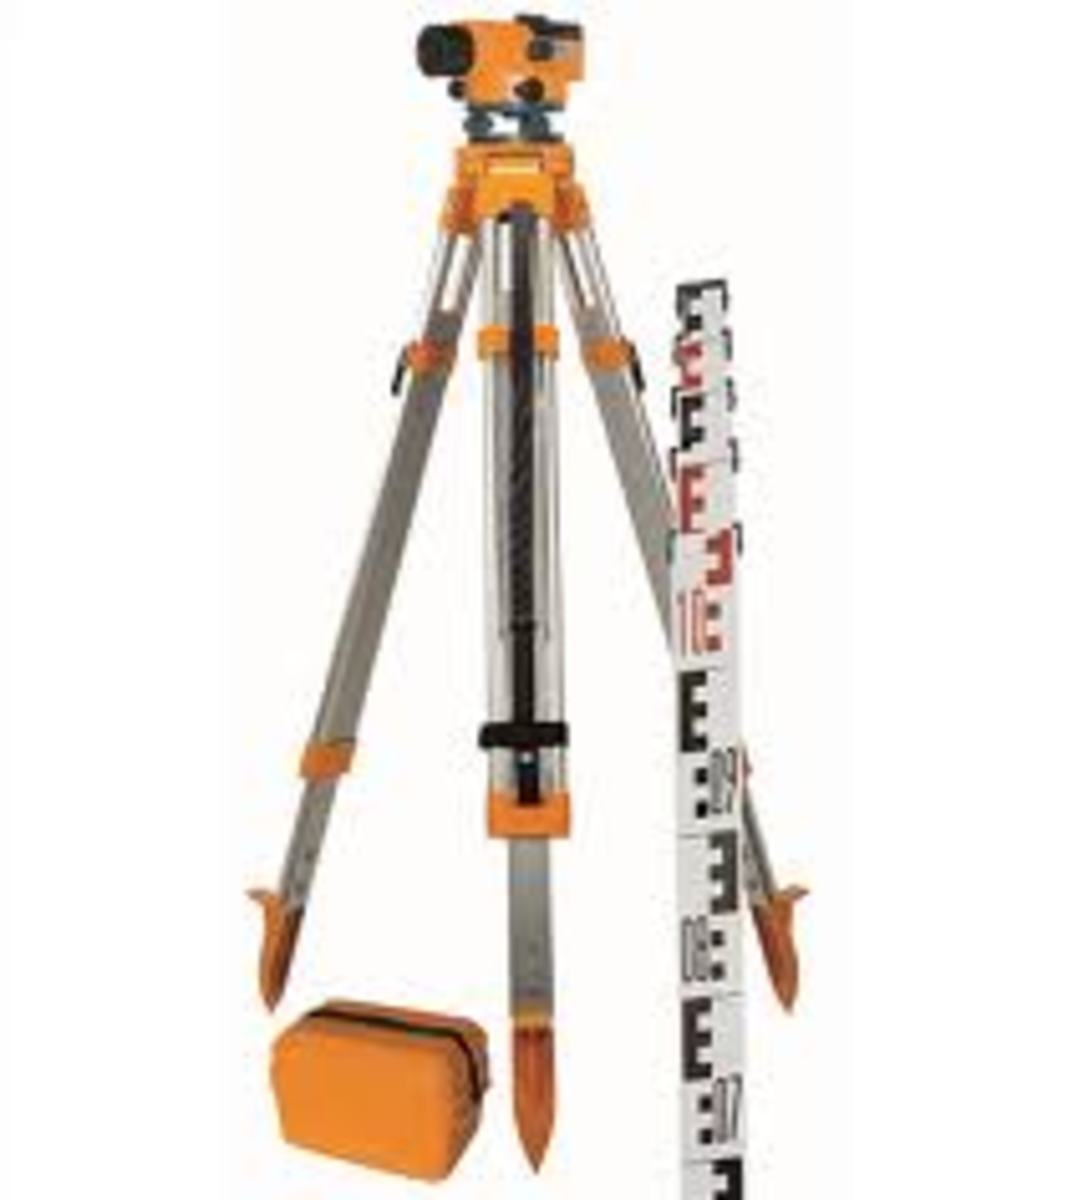 This is one of the many surveyors level, a trained person can do many things with this instrument, it comes with an extending rod and it requires two people to use and mark the levels for the bricklayer.